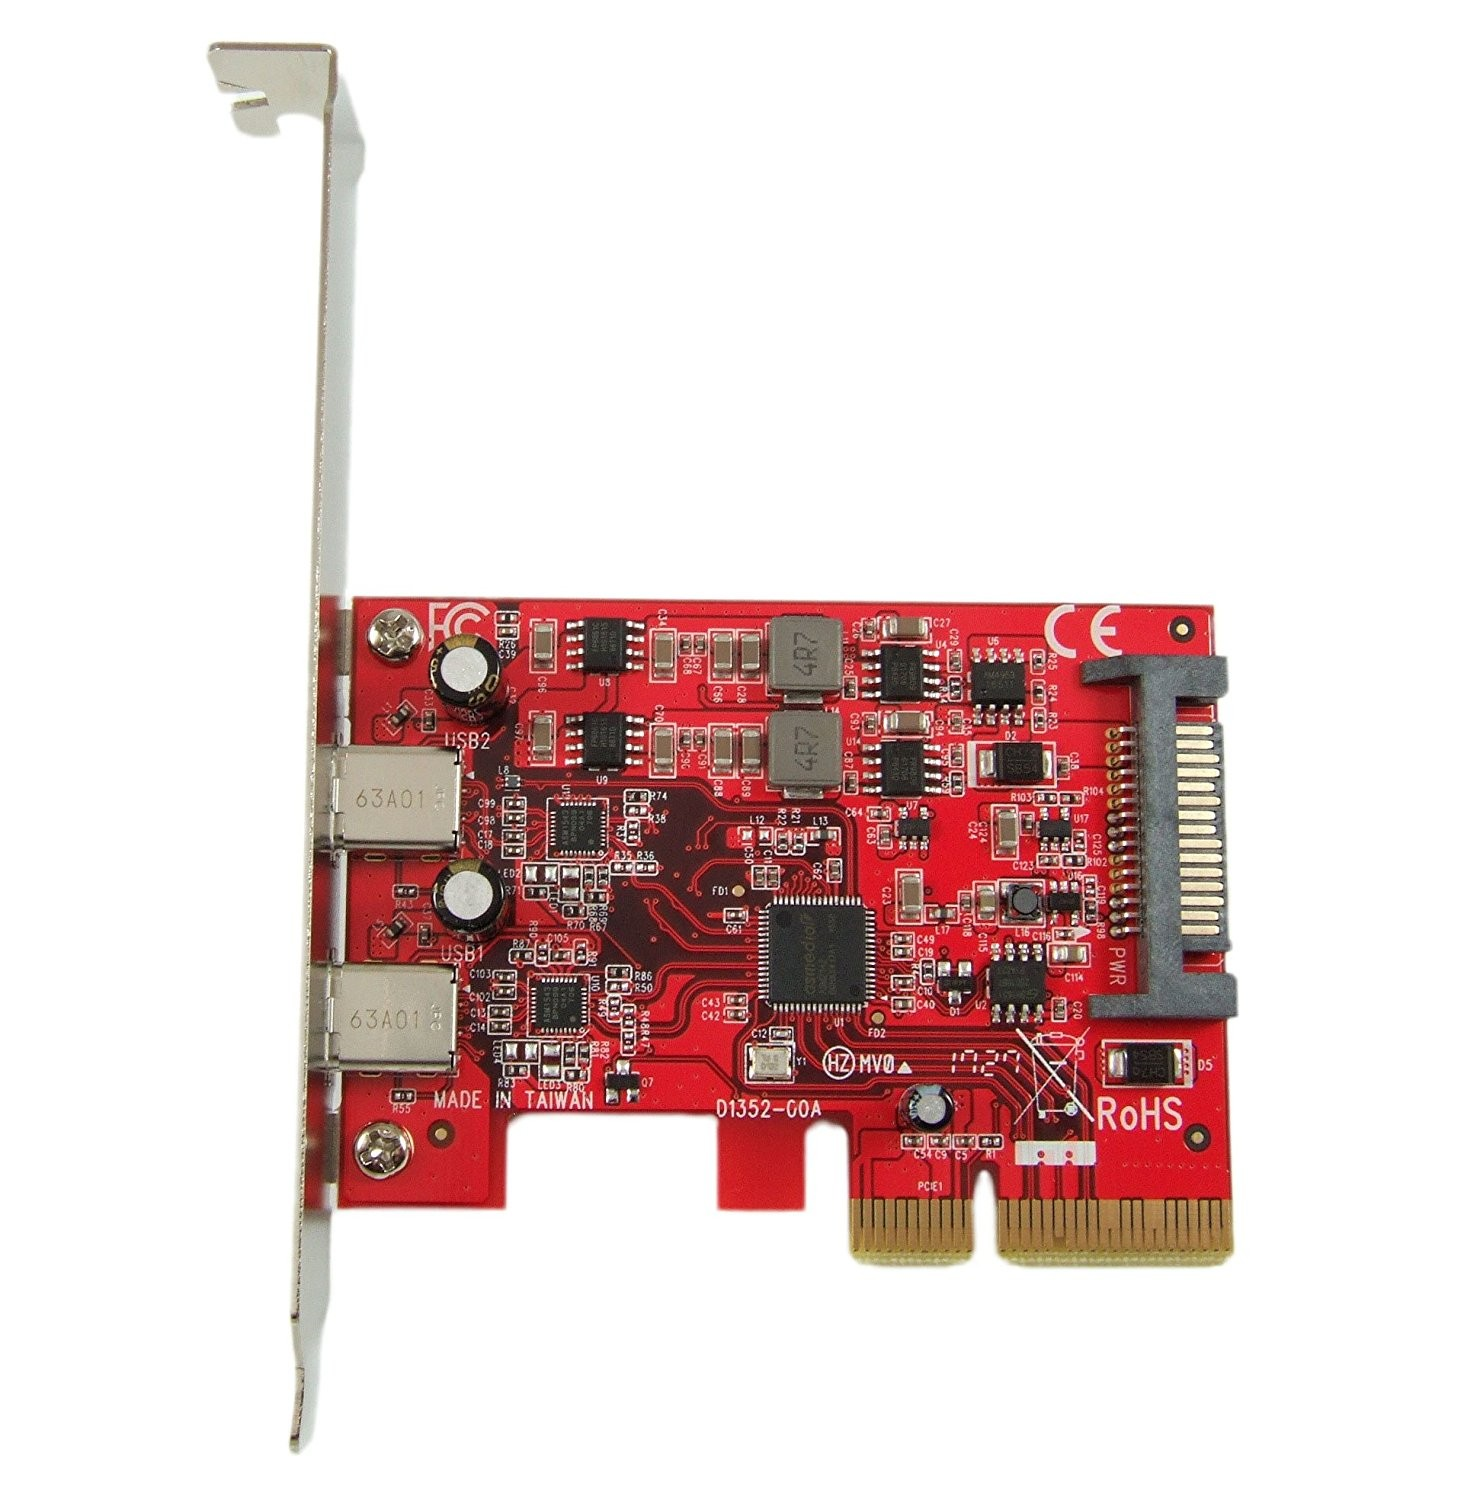 Ableconn USB 3.1 Gen 2 (10 Gbps) 2-Port Type-C PCI Express (PCIe) x4 Host Adapter Card For Mac Pro, PU31-2C-2